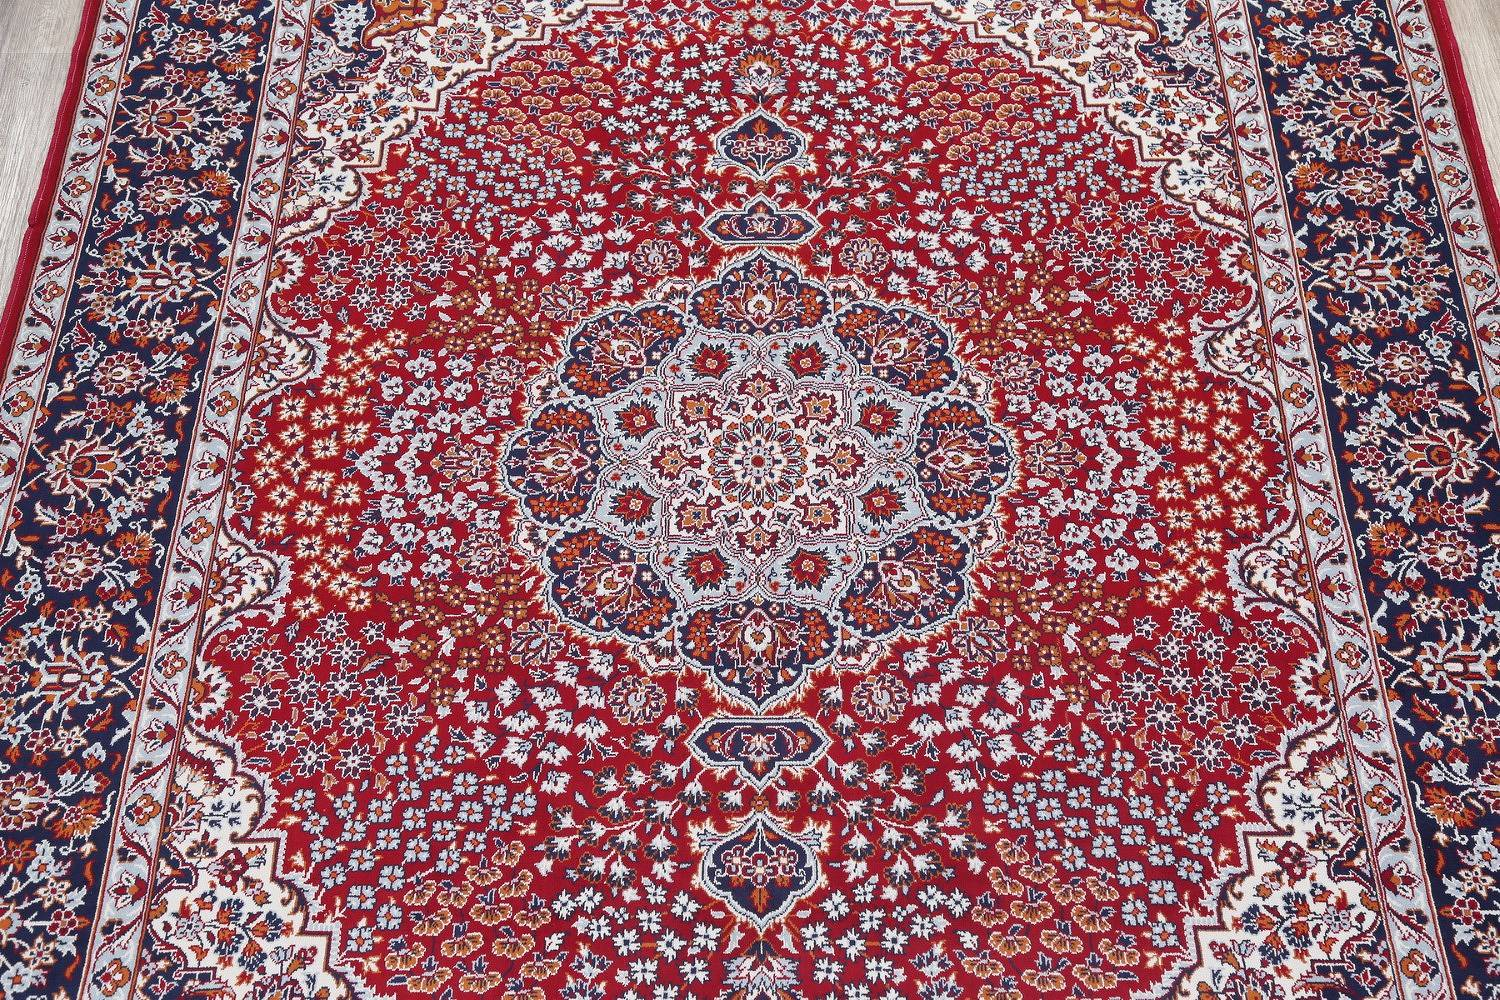 All-Over Floral Red Najafabad Isfahan Turkish Oriental Area Rug Wool 10x13